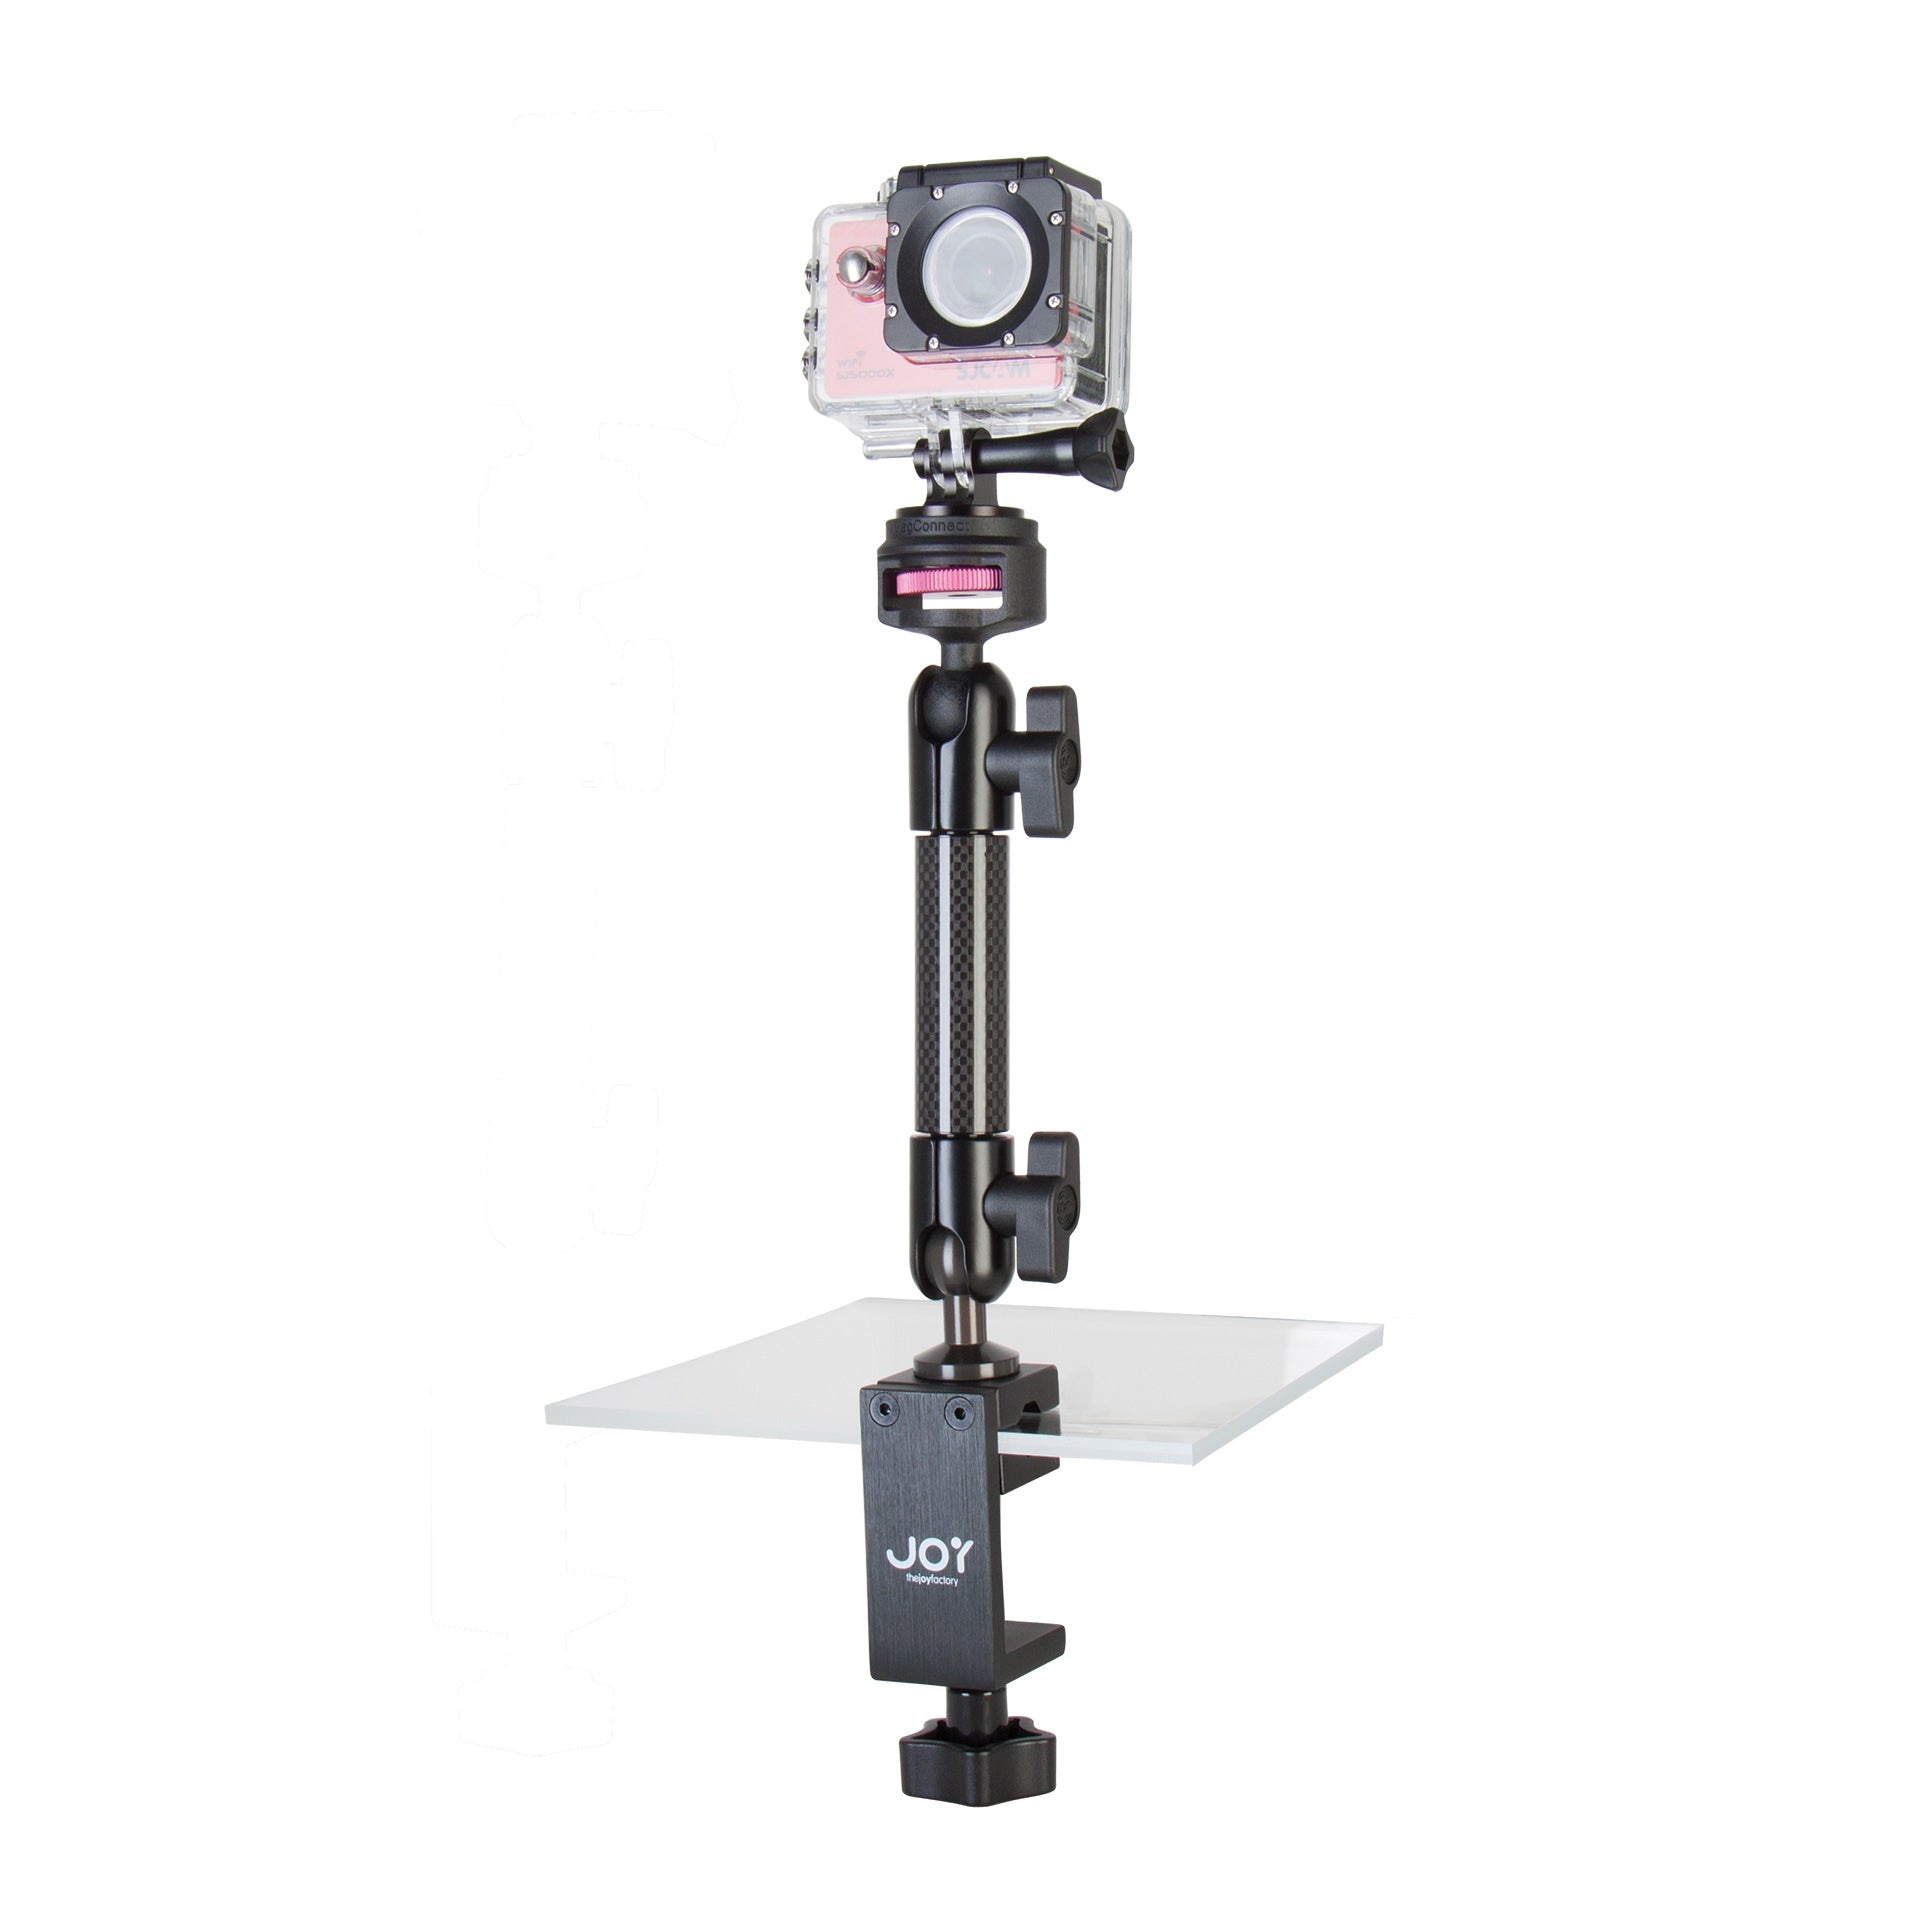 mount-bundles - MagConnect C-Clamp Mount for GoPro Camera The Joy Factory